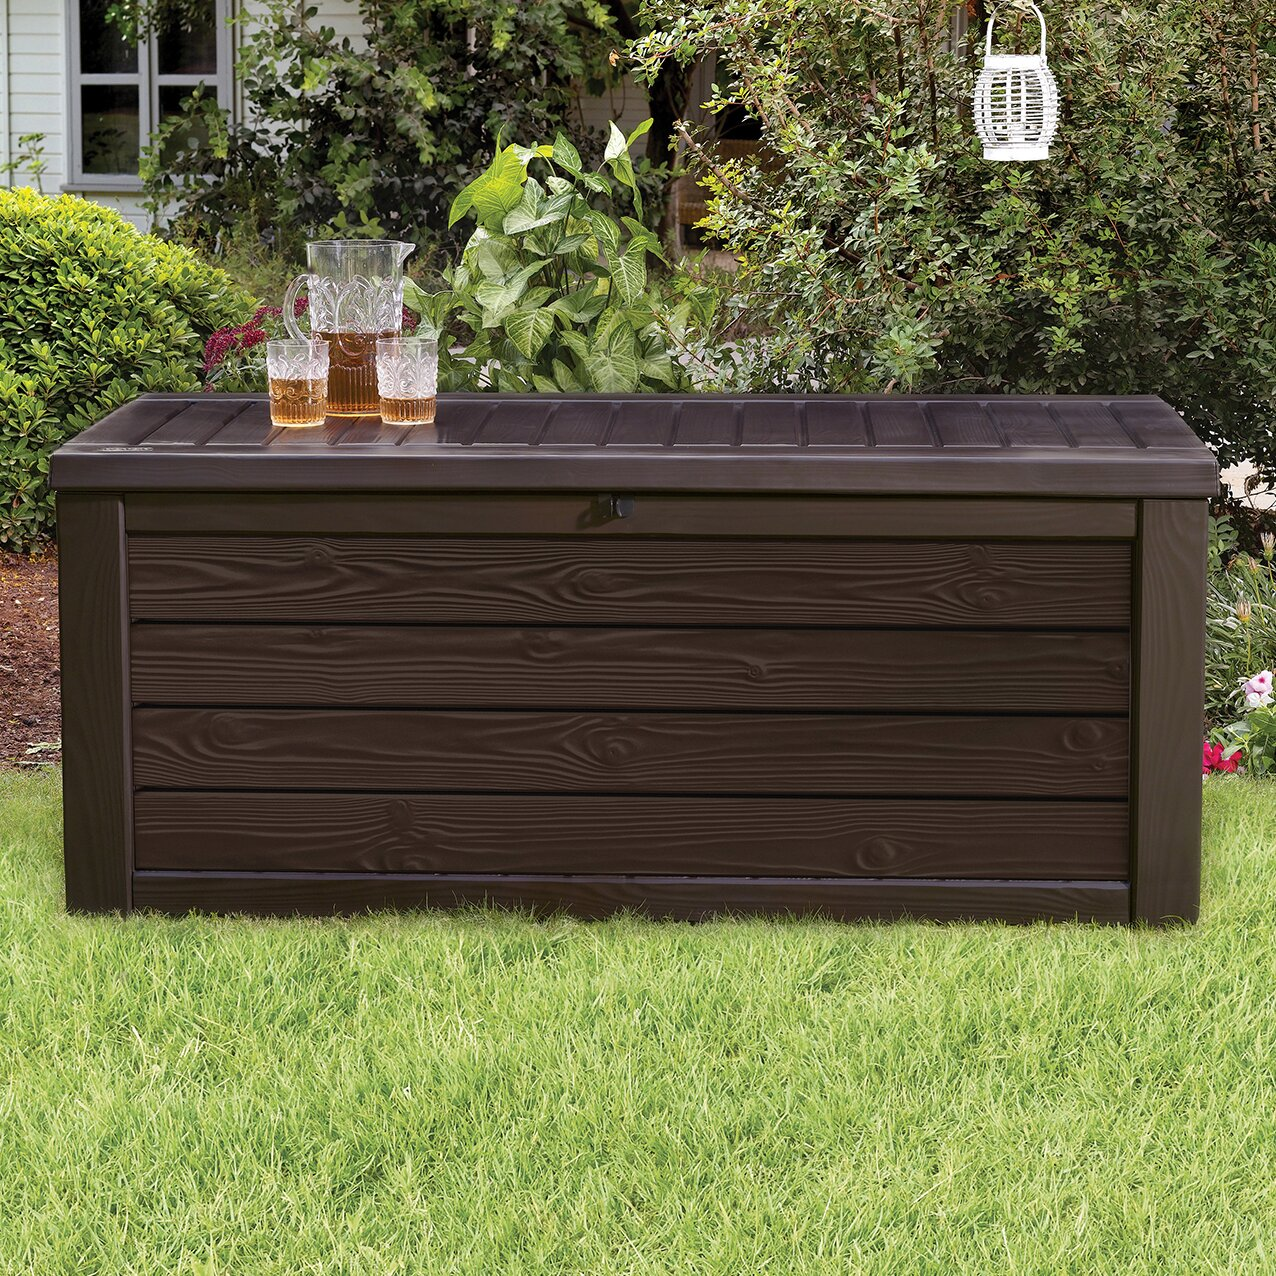 Keter Westwood 150 Gallon Resin Deck Box Amp Reviews Wayfair